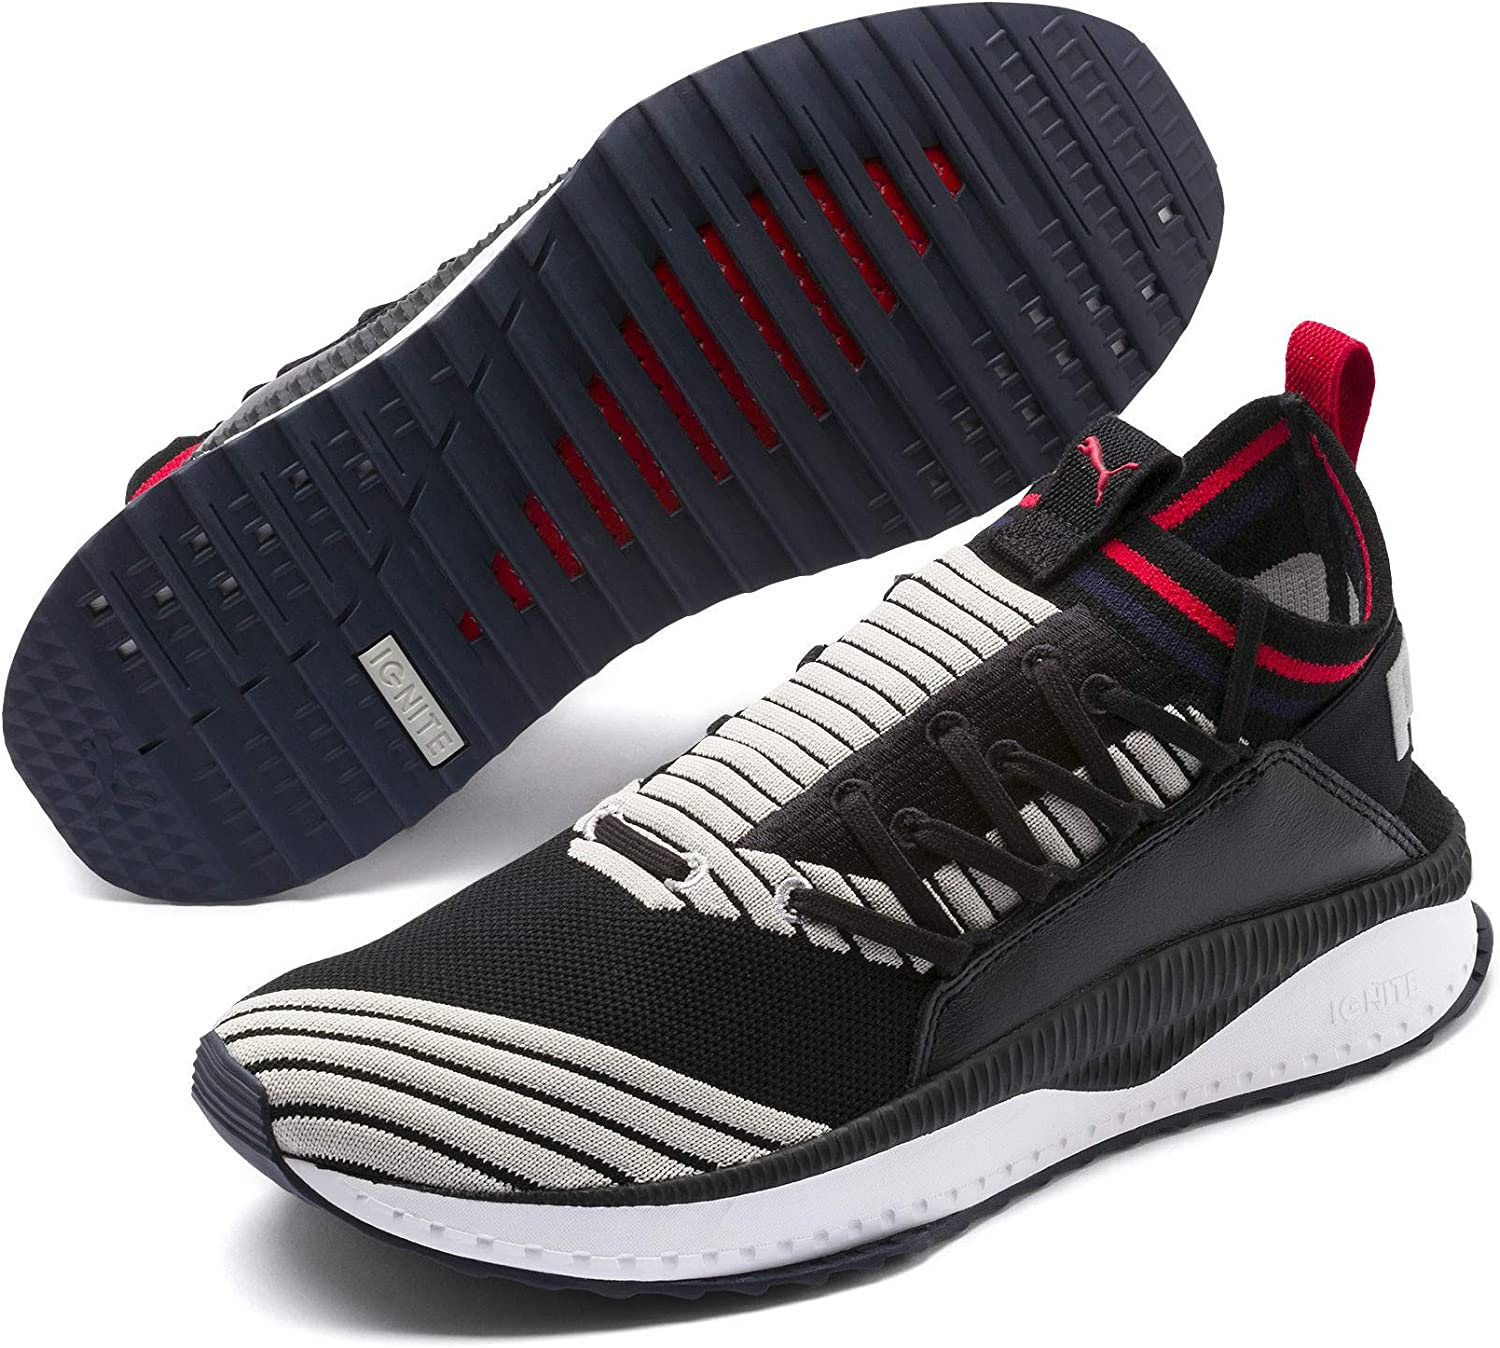 Puma Tsugi Black Grey Ribbon Red 367519 04